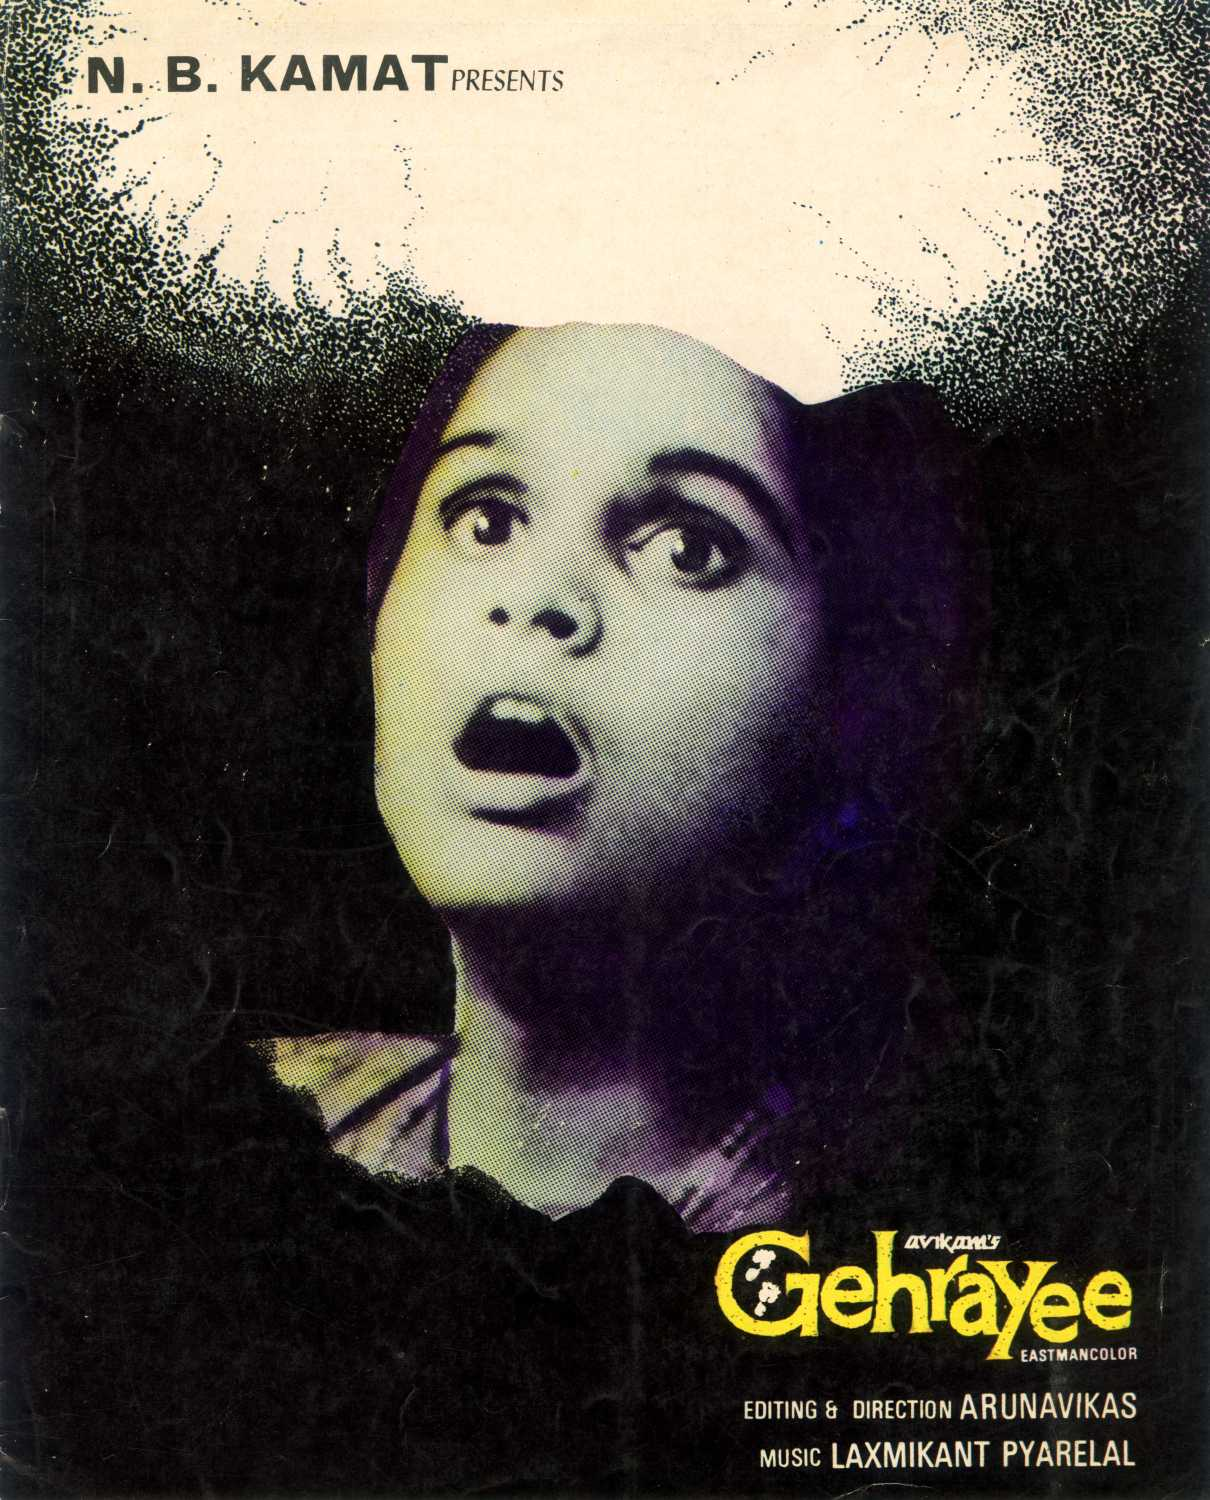 gehrayee 1980 movie